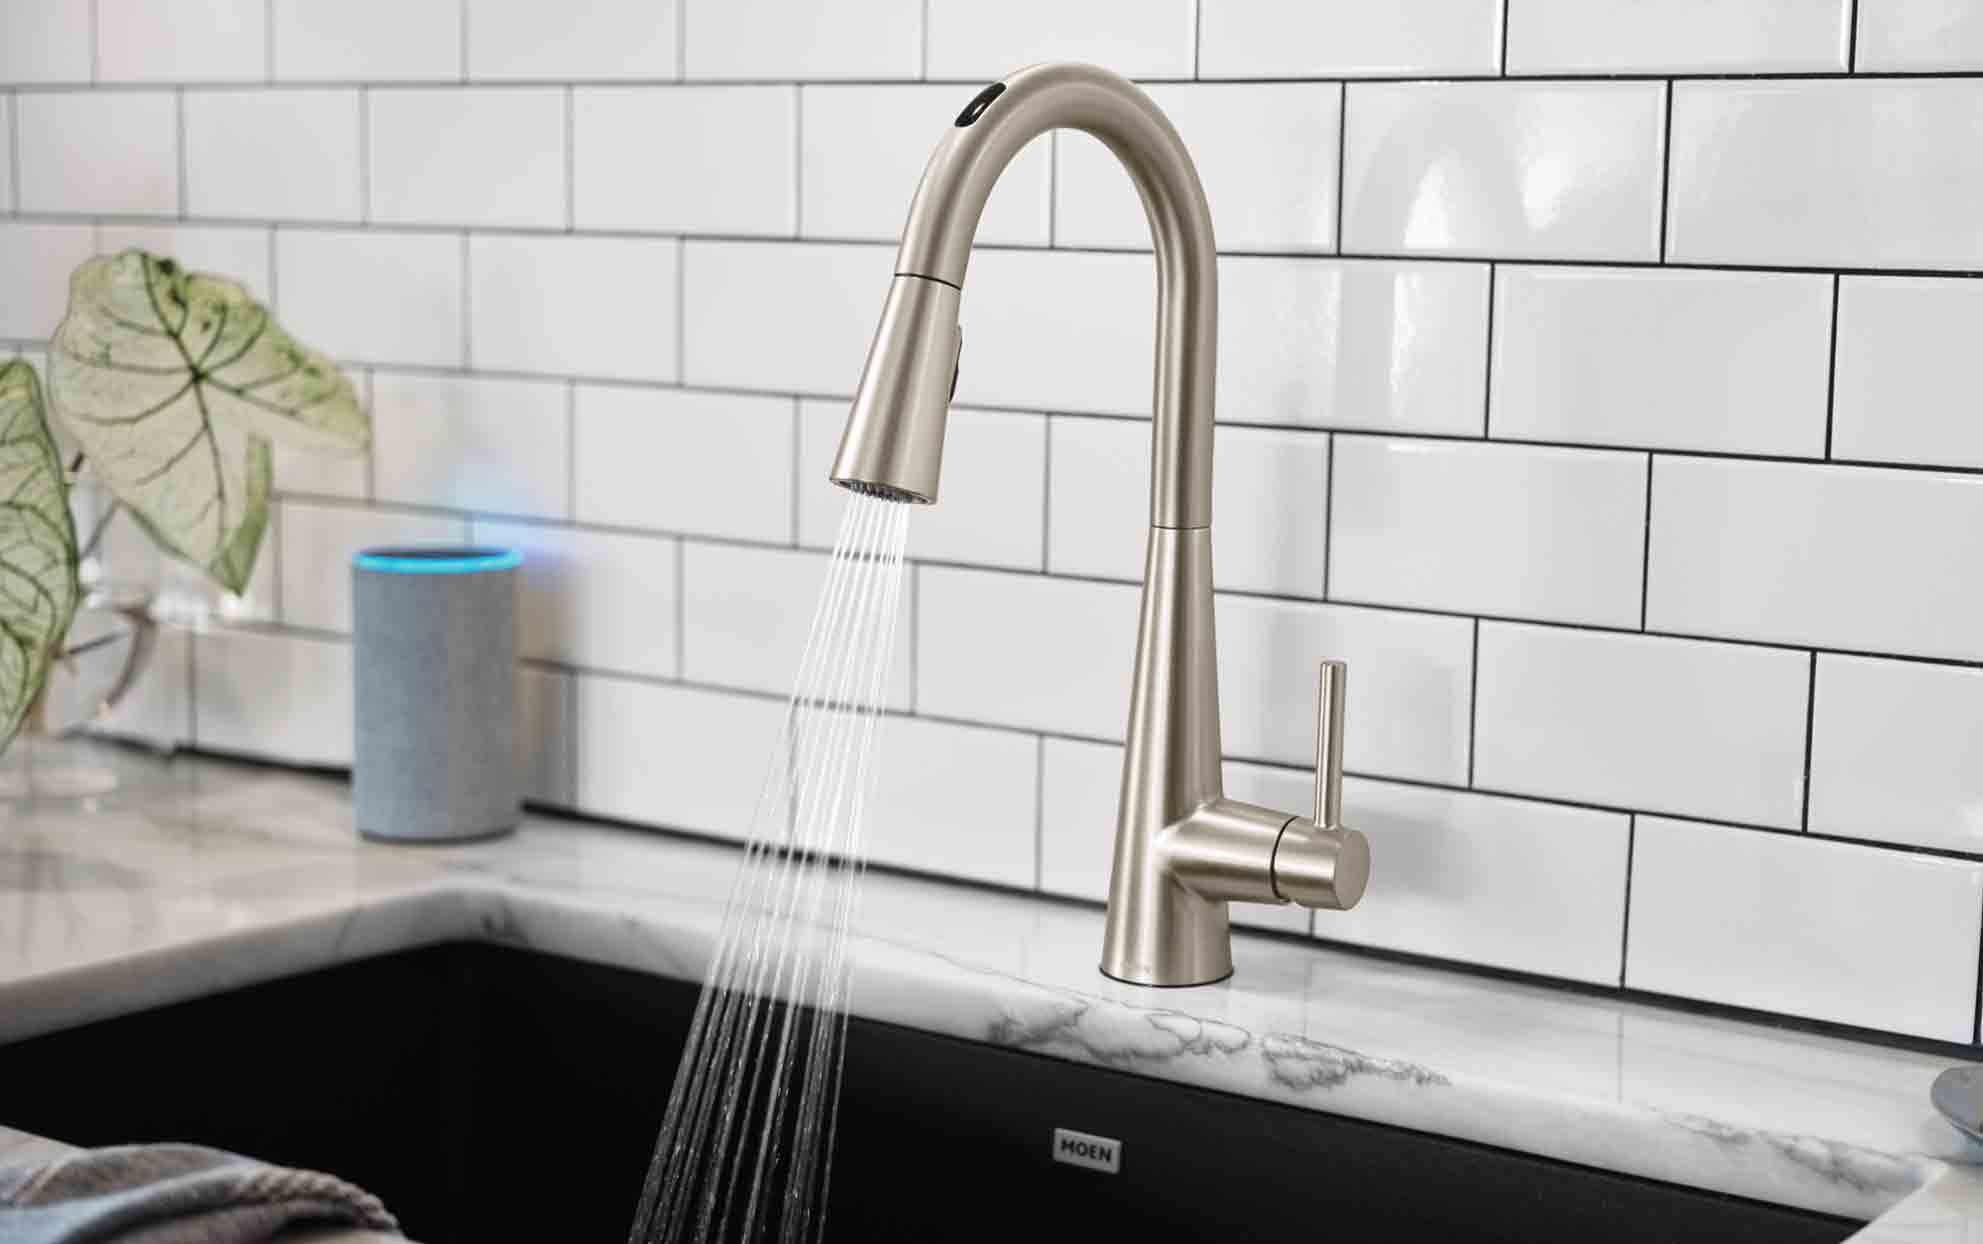 U by Moen Smart Faucet in Sleek, Spot Resist Stainless with water spraying.